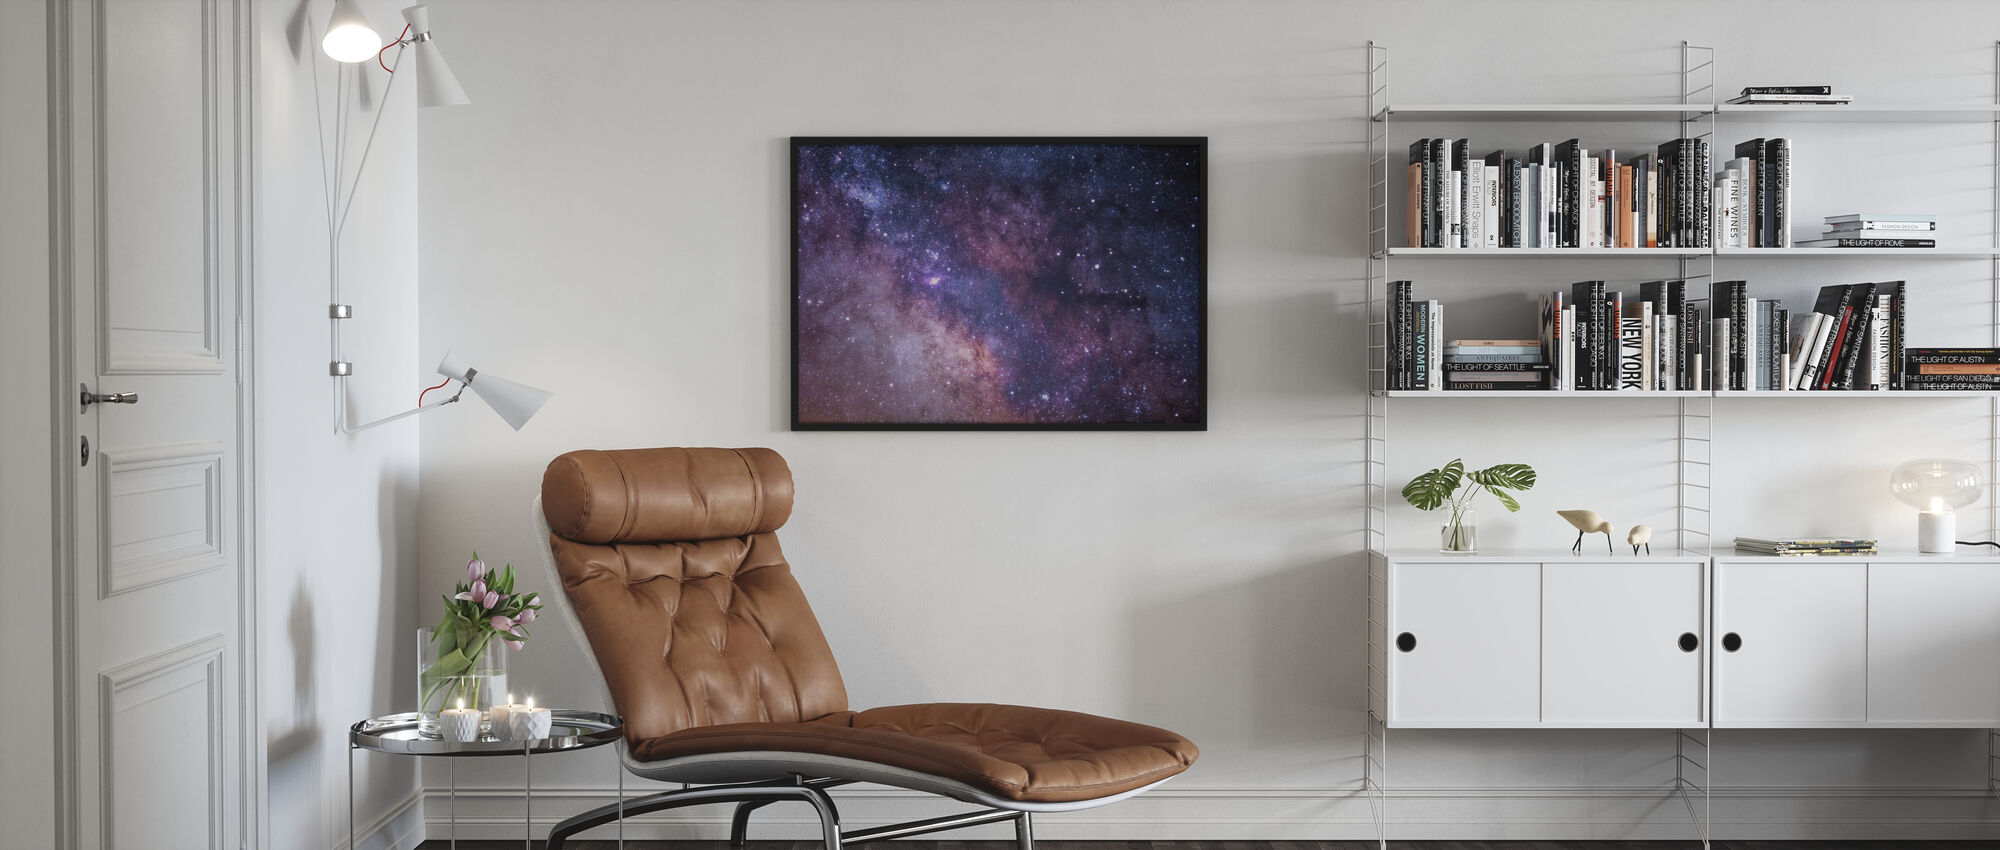 Galaxy - Poster - Living Room